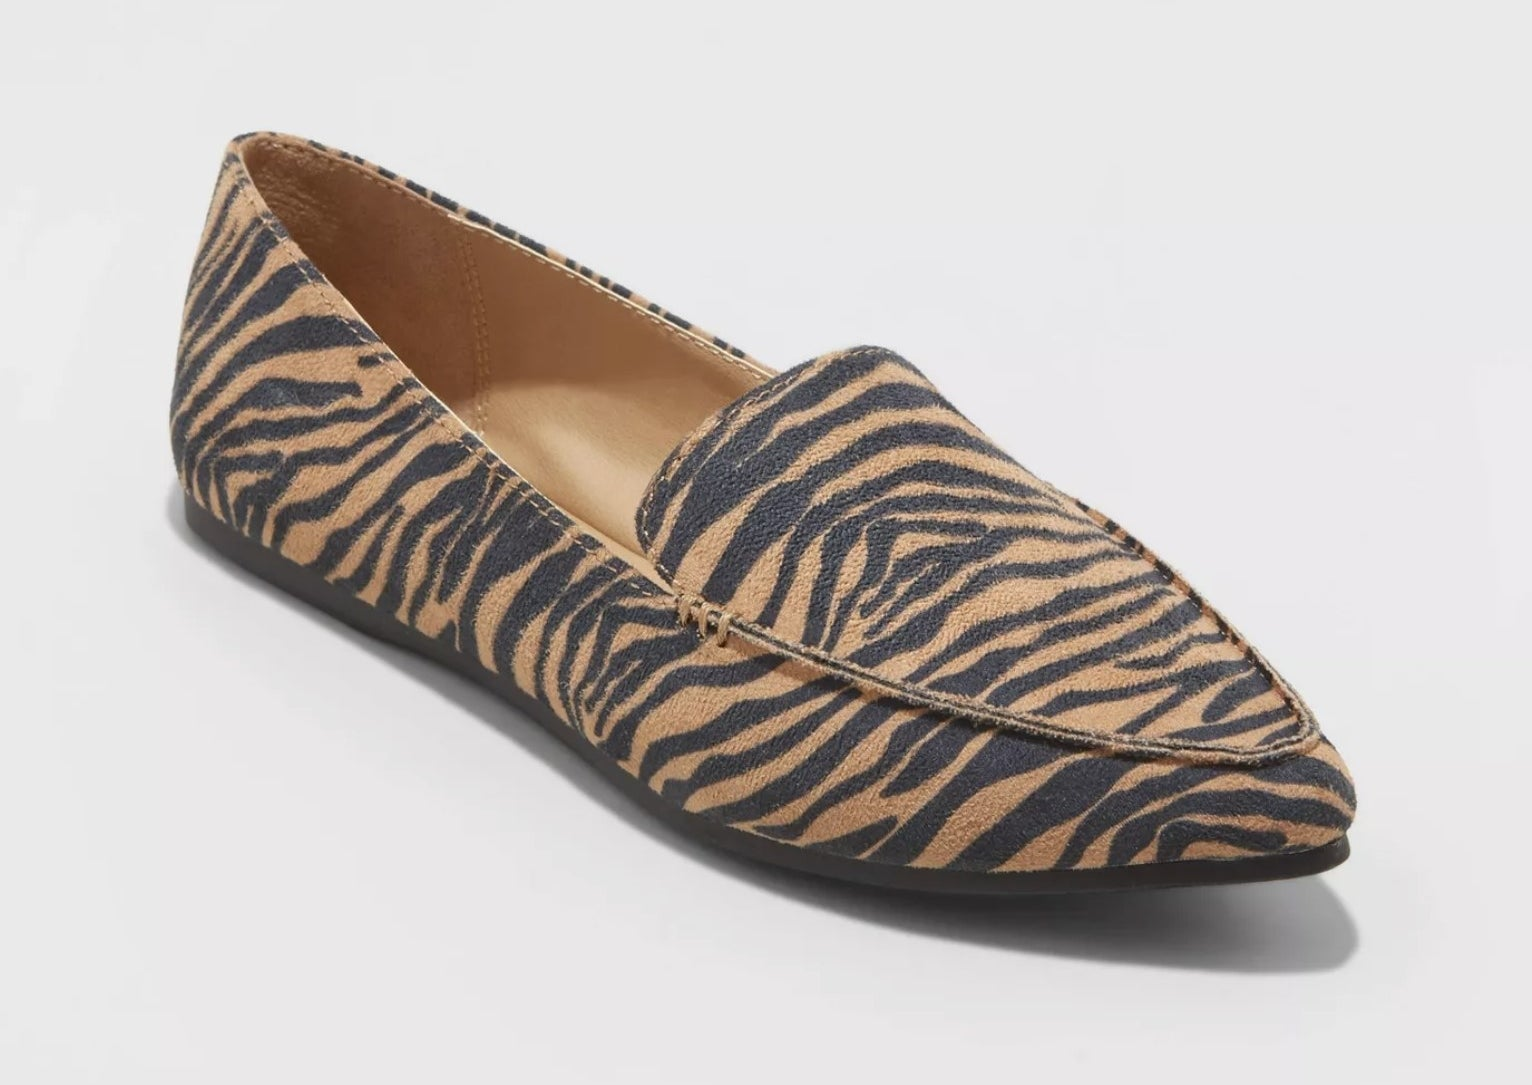 the tiger print loafers